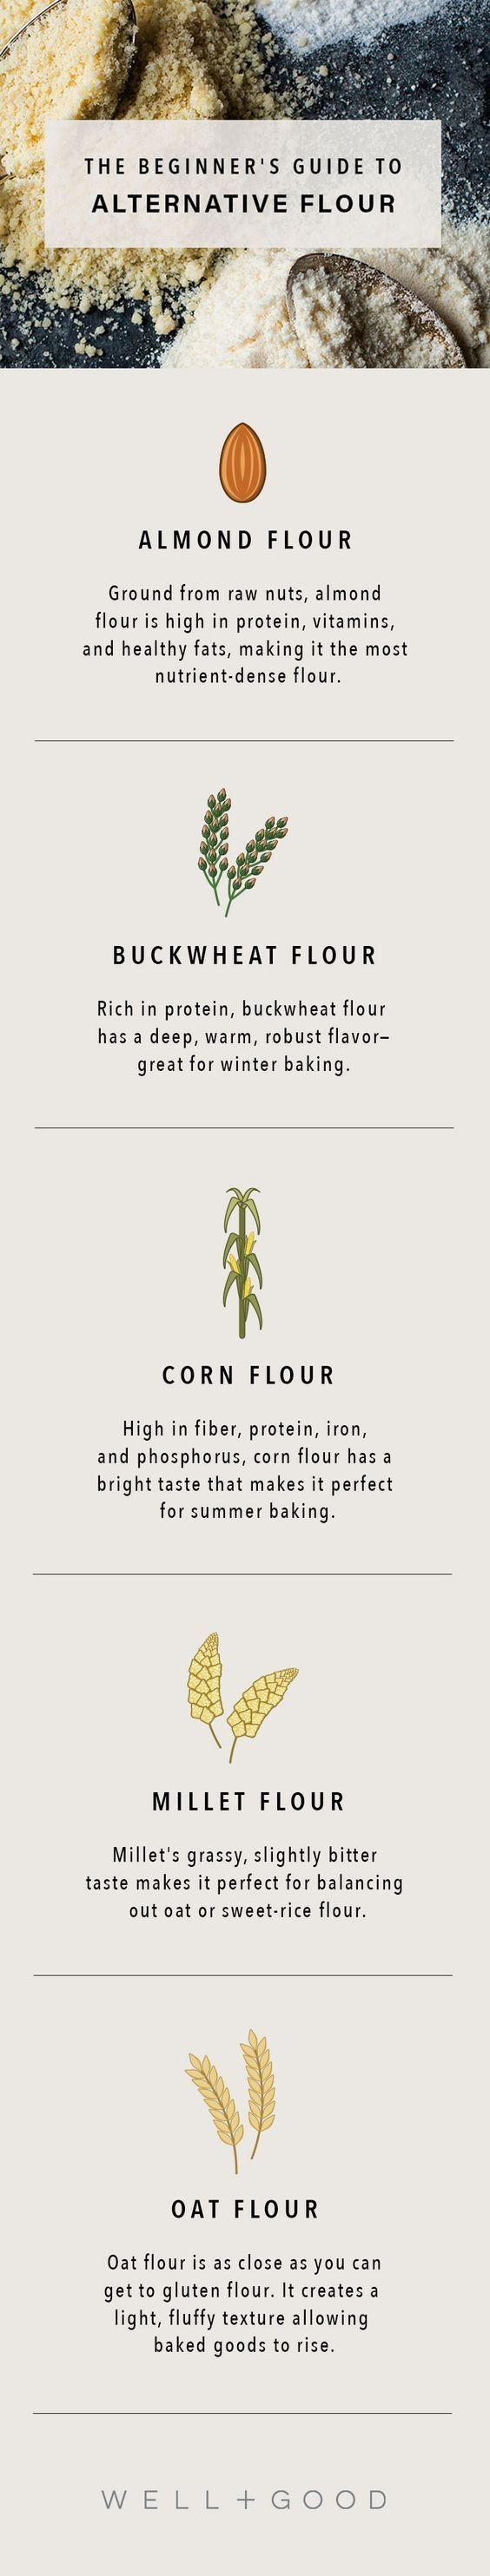 Just because you're gluten free doesn't mean you can't bake! There are a lot of choices when it comes to alternative flour sources, and each has their own special profile they bring to the final product. Read to find out more about almond flour, buckwheat flour, corn flour, millet flour and oat flour.